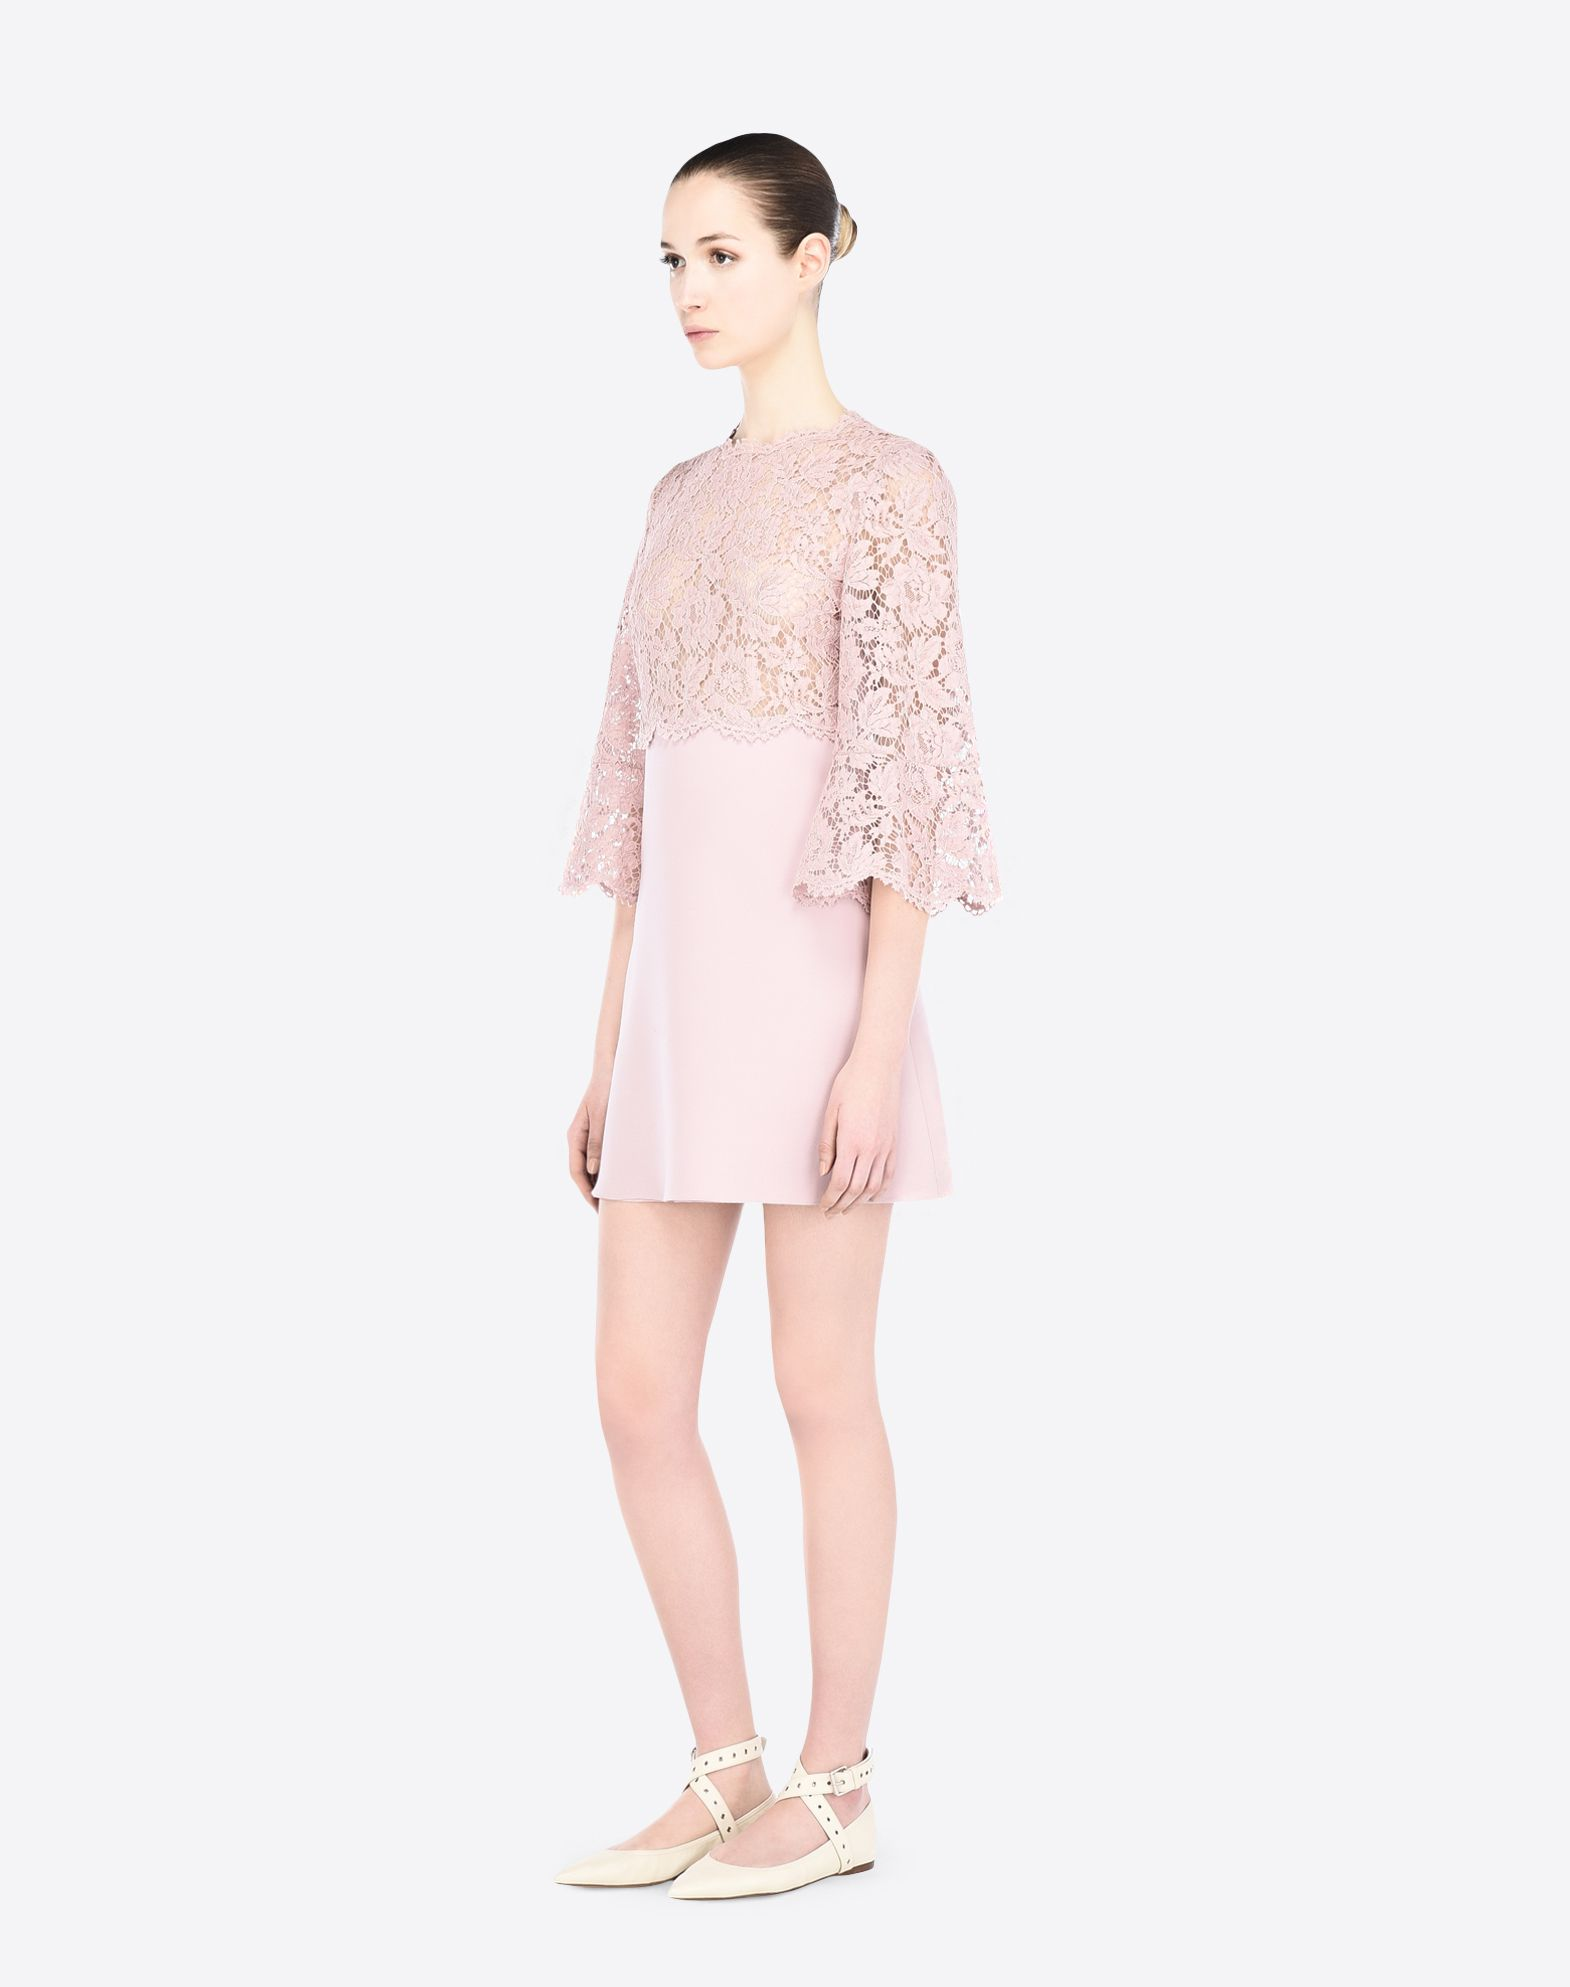 VALENTINO Crêpe Lace Solid color Round collar Hook-and-bar, zip Unlined 3/4 length sleeves  34629880os